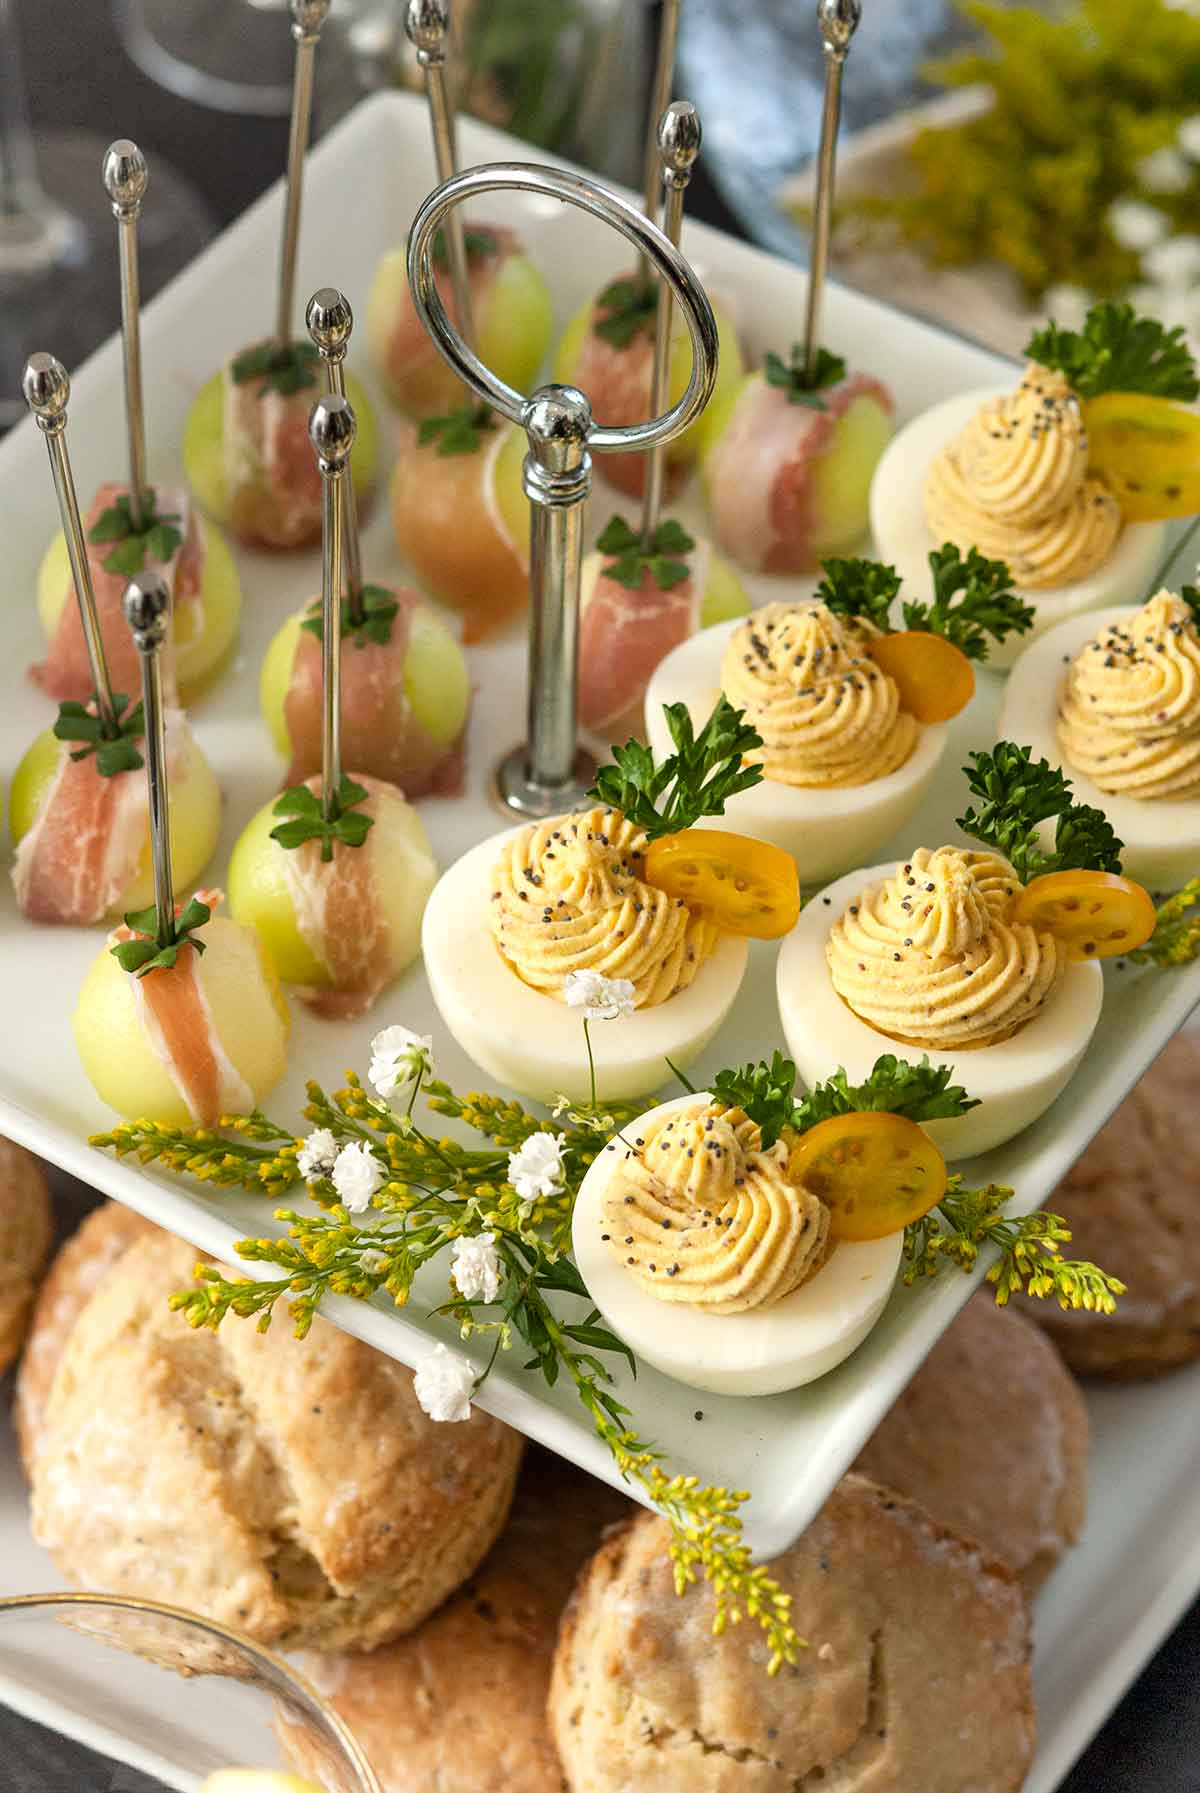 An appetizer tier with deviled eggs and prosciutto-wrapped melon above scones on a table.